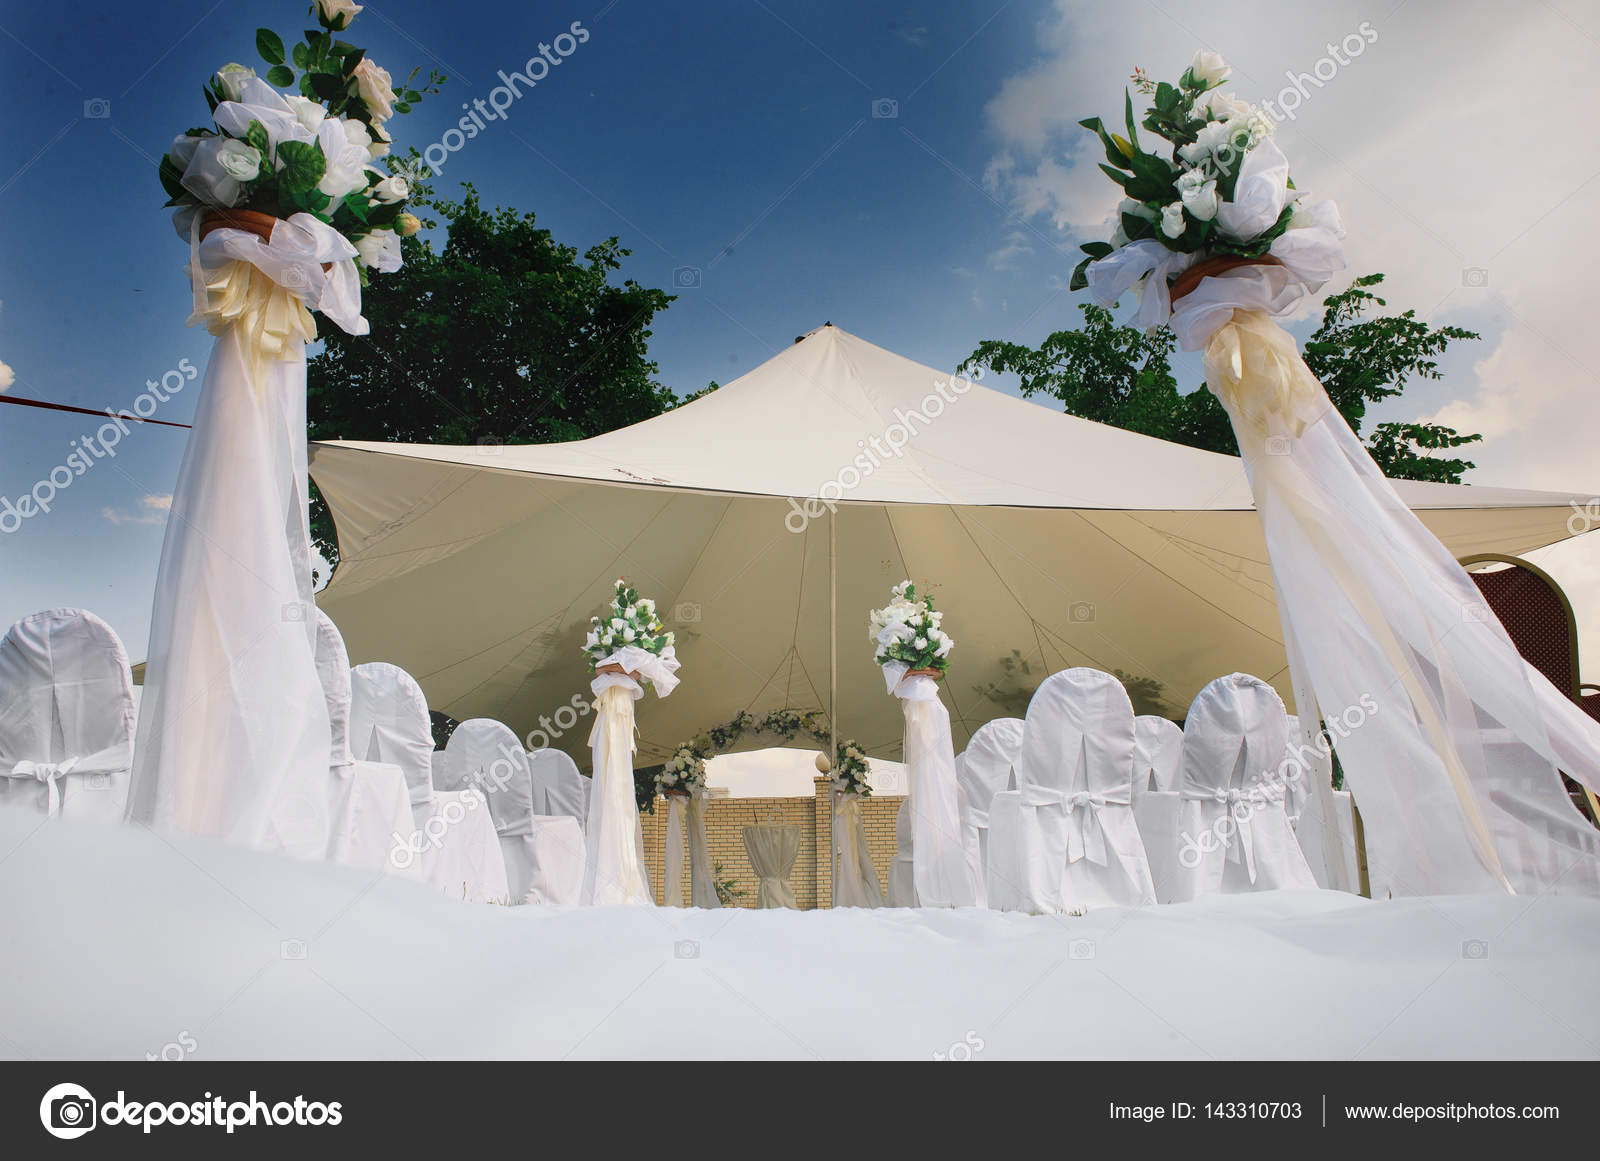 White wedding canopy in summer with white fabric chairs decoration of flowers white roses & white wedding canopy in summer with white fabric chairs ...